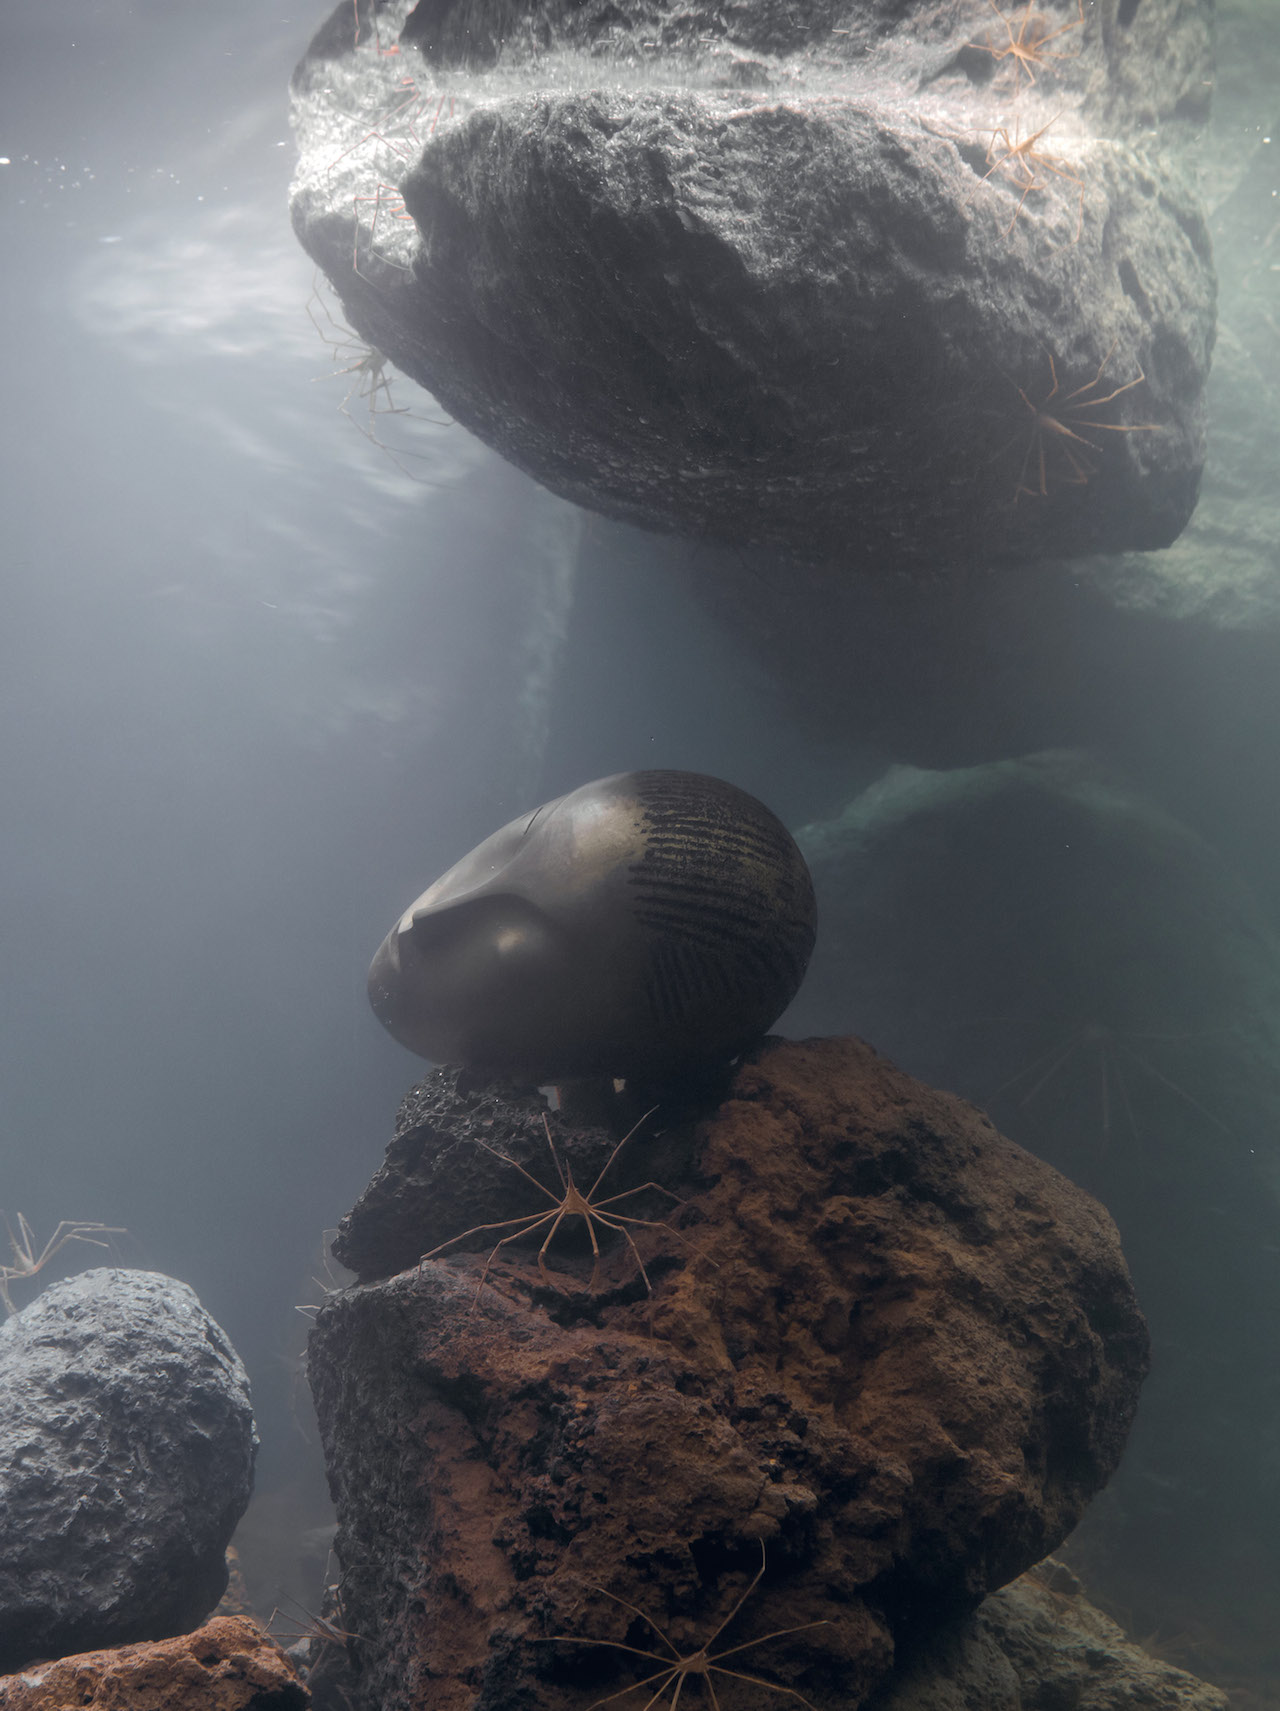 "Pierre Huyghe, ""Zoodram 5 (after 'Sleeping Muse' by Constantin Brancusi)"" (2011), glass tank, filtration system, resin mask, hermit crab, arrow crabs, and basalt rock (image courtesy LACMA) (click to enlarge)"